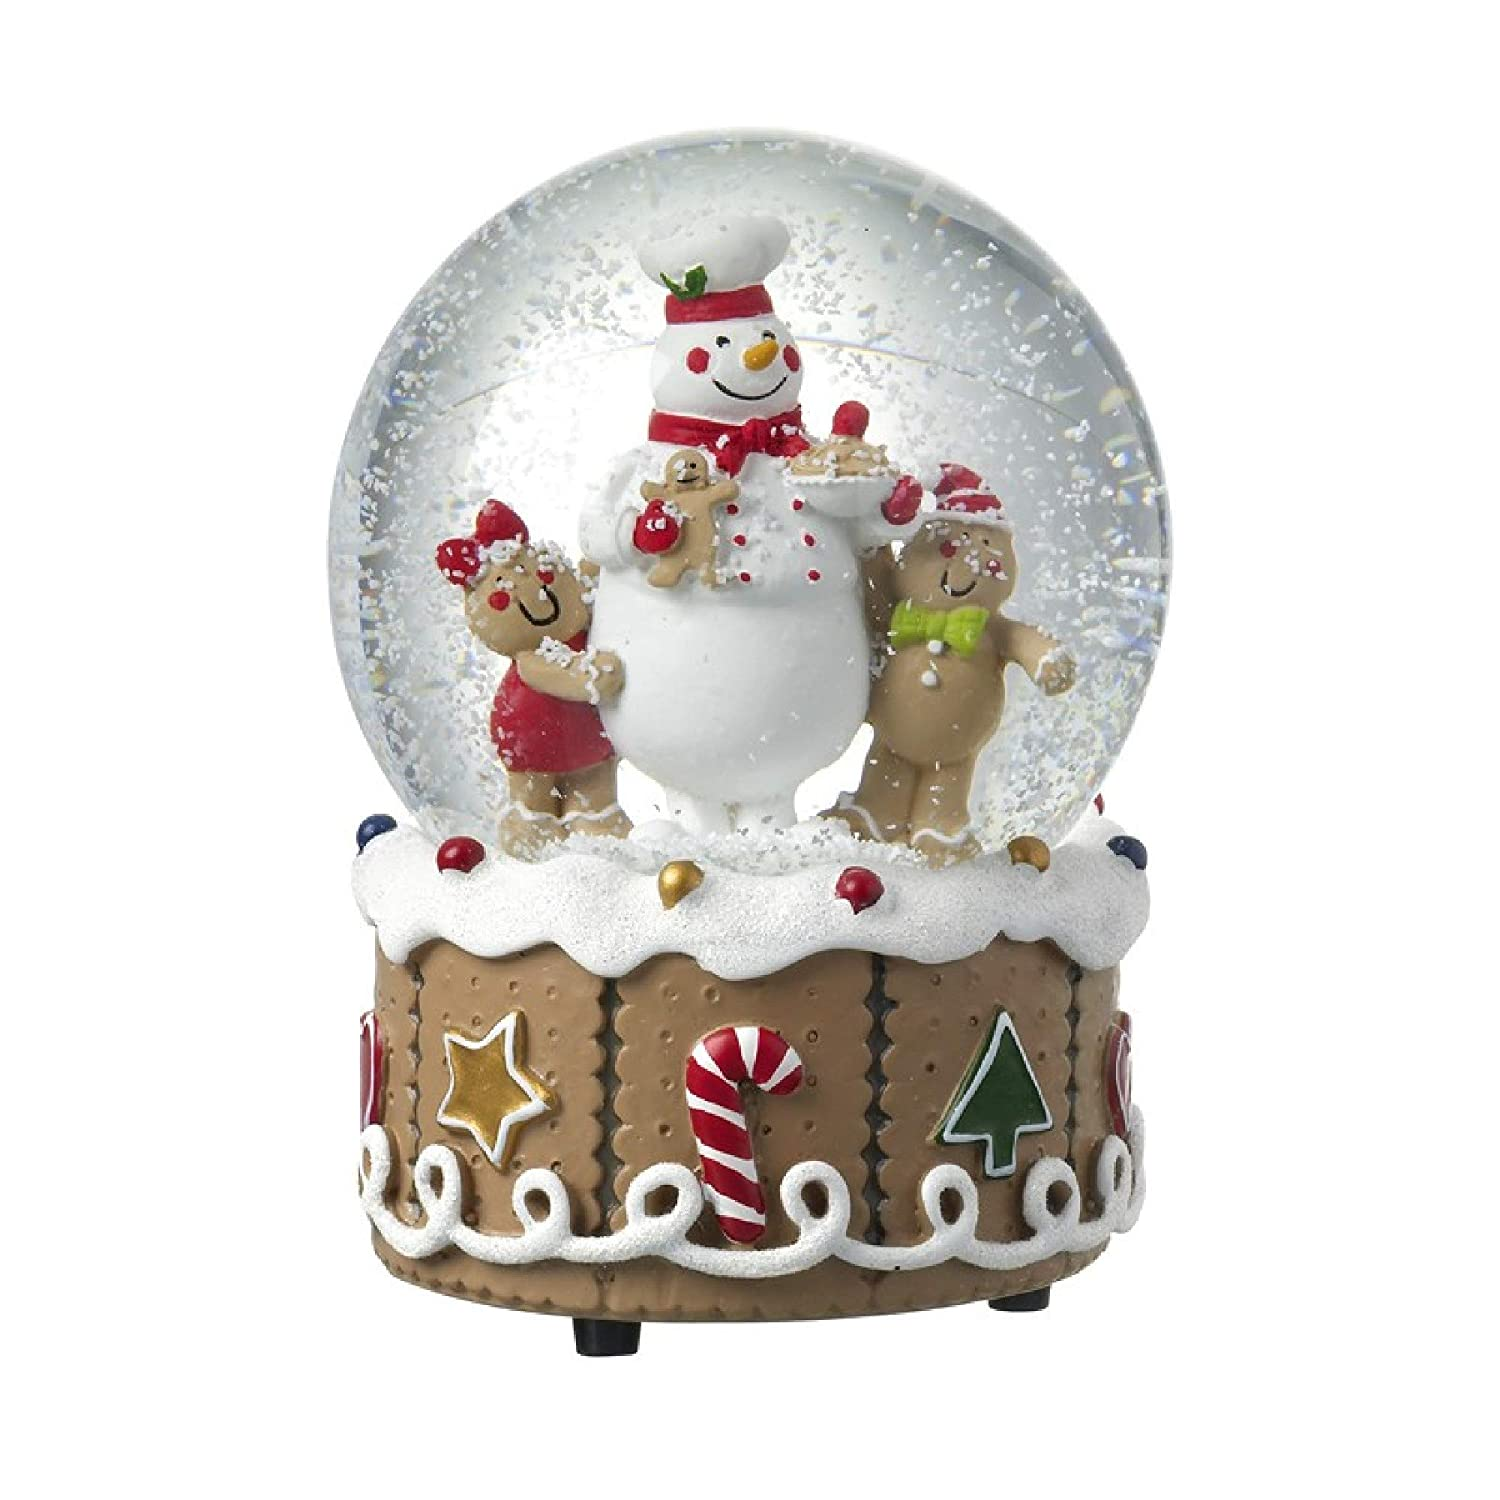 Heaven Sends Festive Family Snow Globe UTHS2183_1